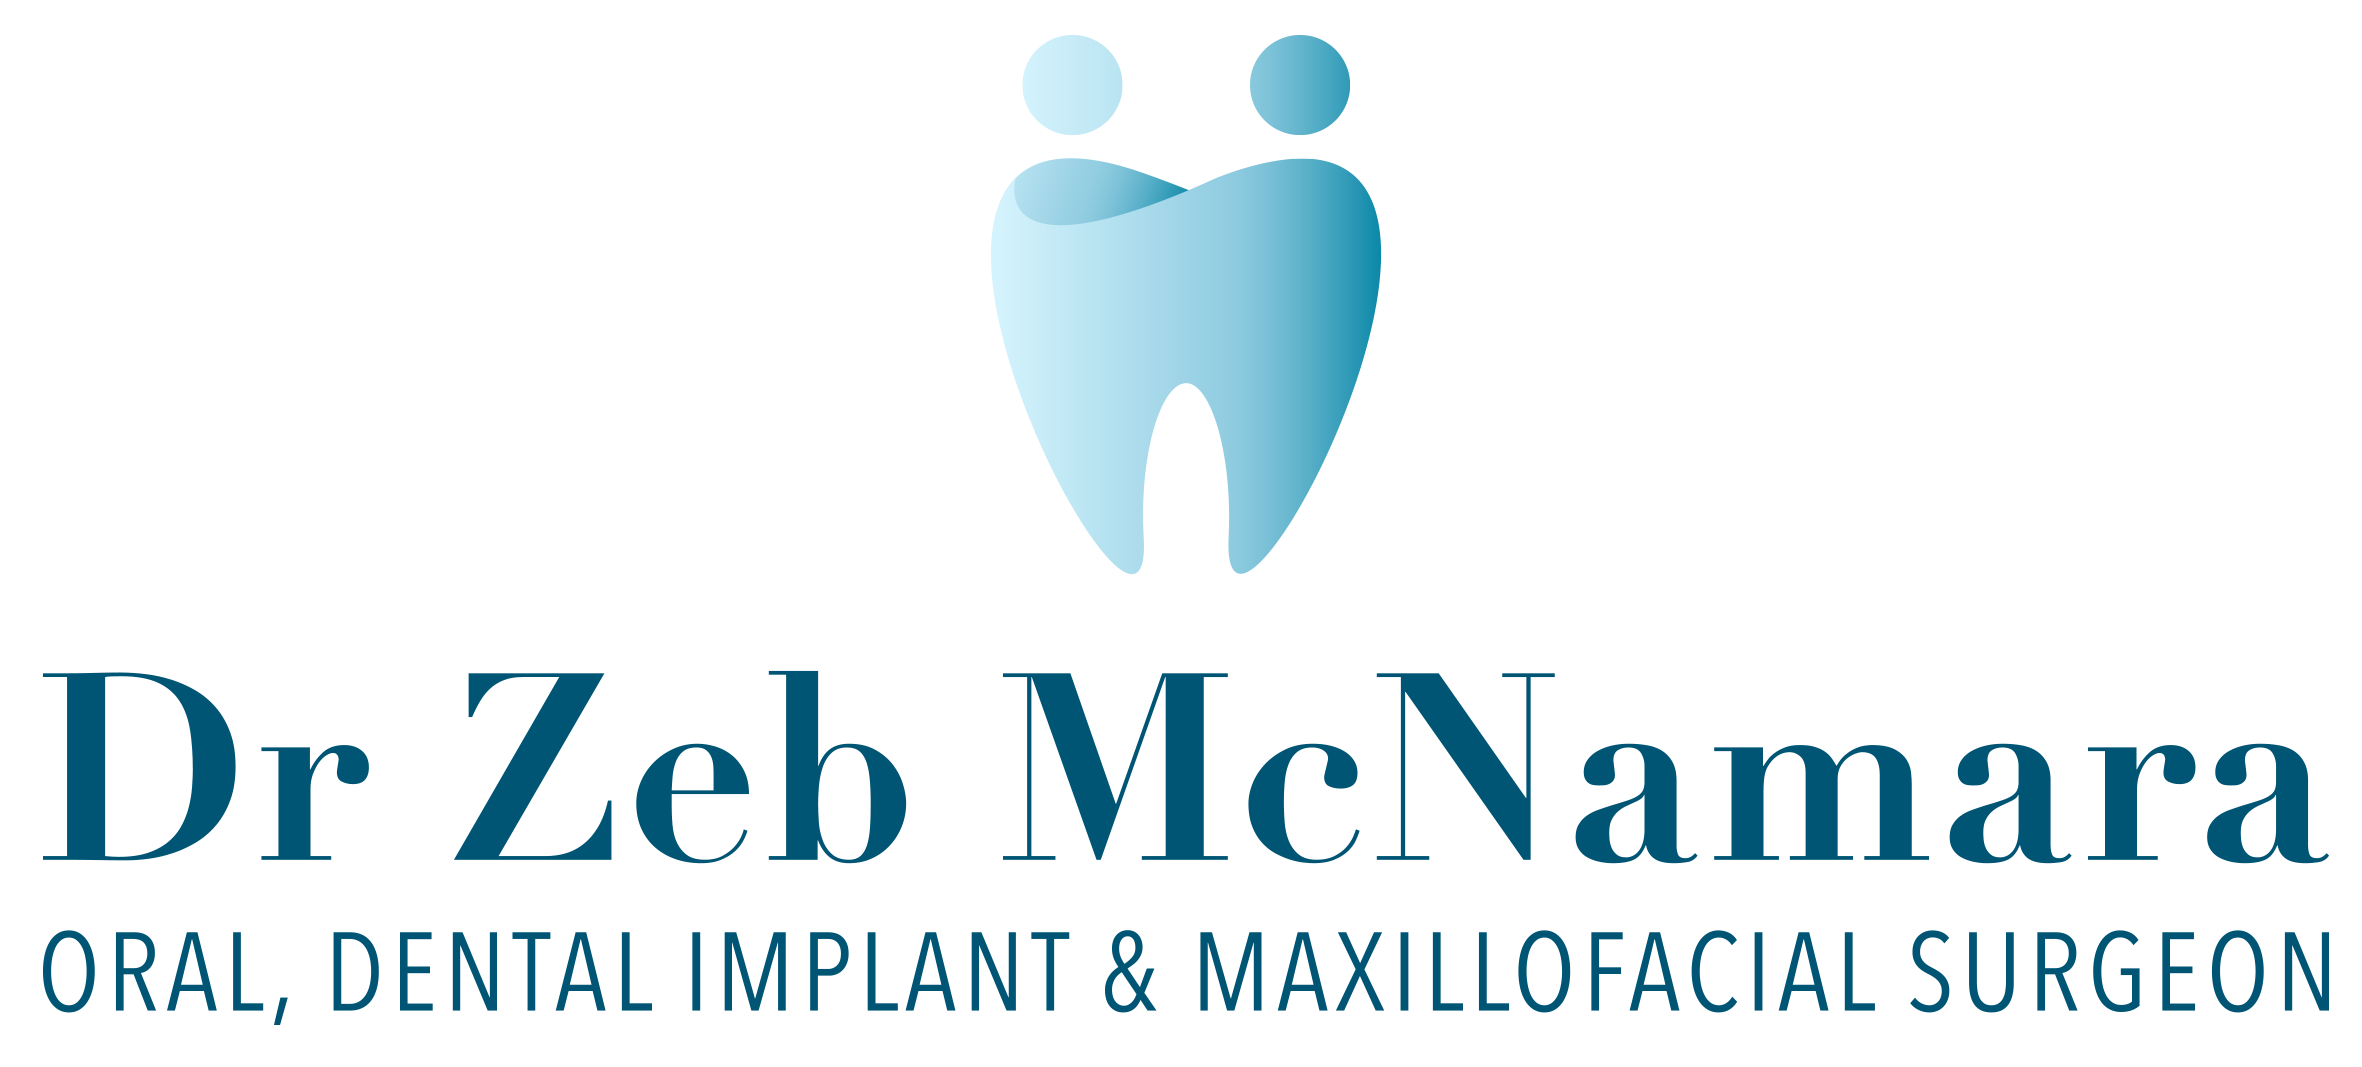 Medical Branding Logo Design for an Oral, Dental Implant & Maxillofacial Surgeon by Handsome Ground Studio.